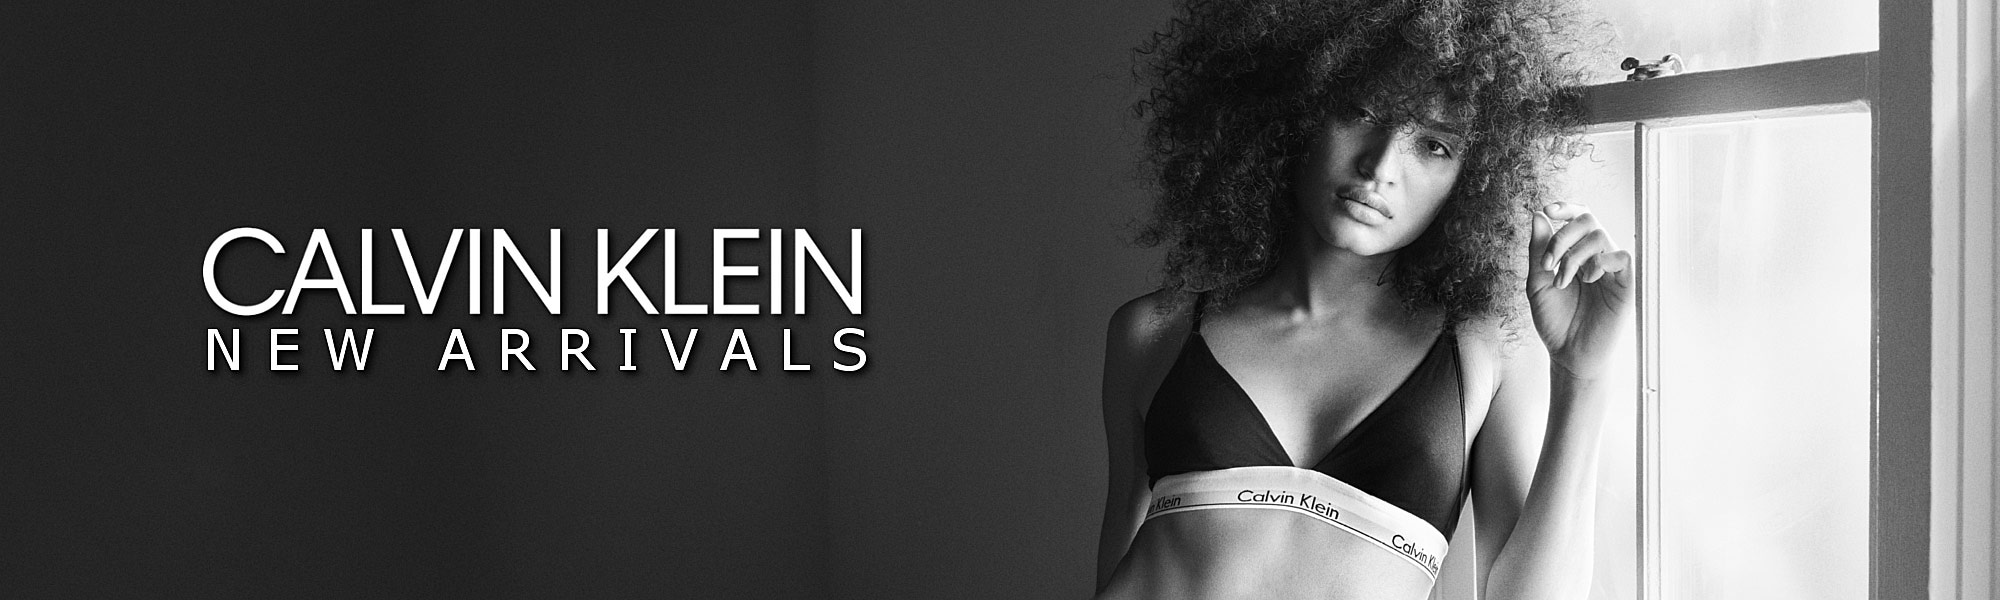 Calvin Klein Women New Arrivals